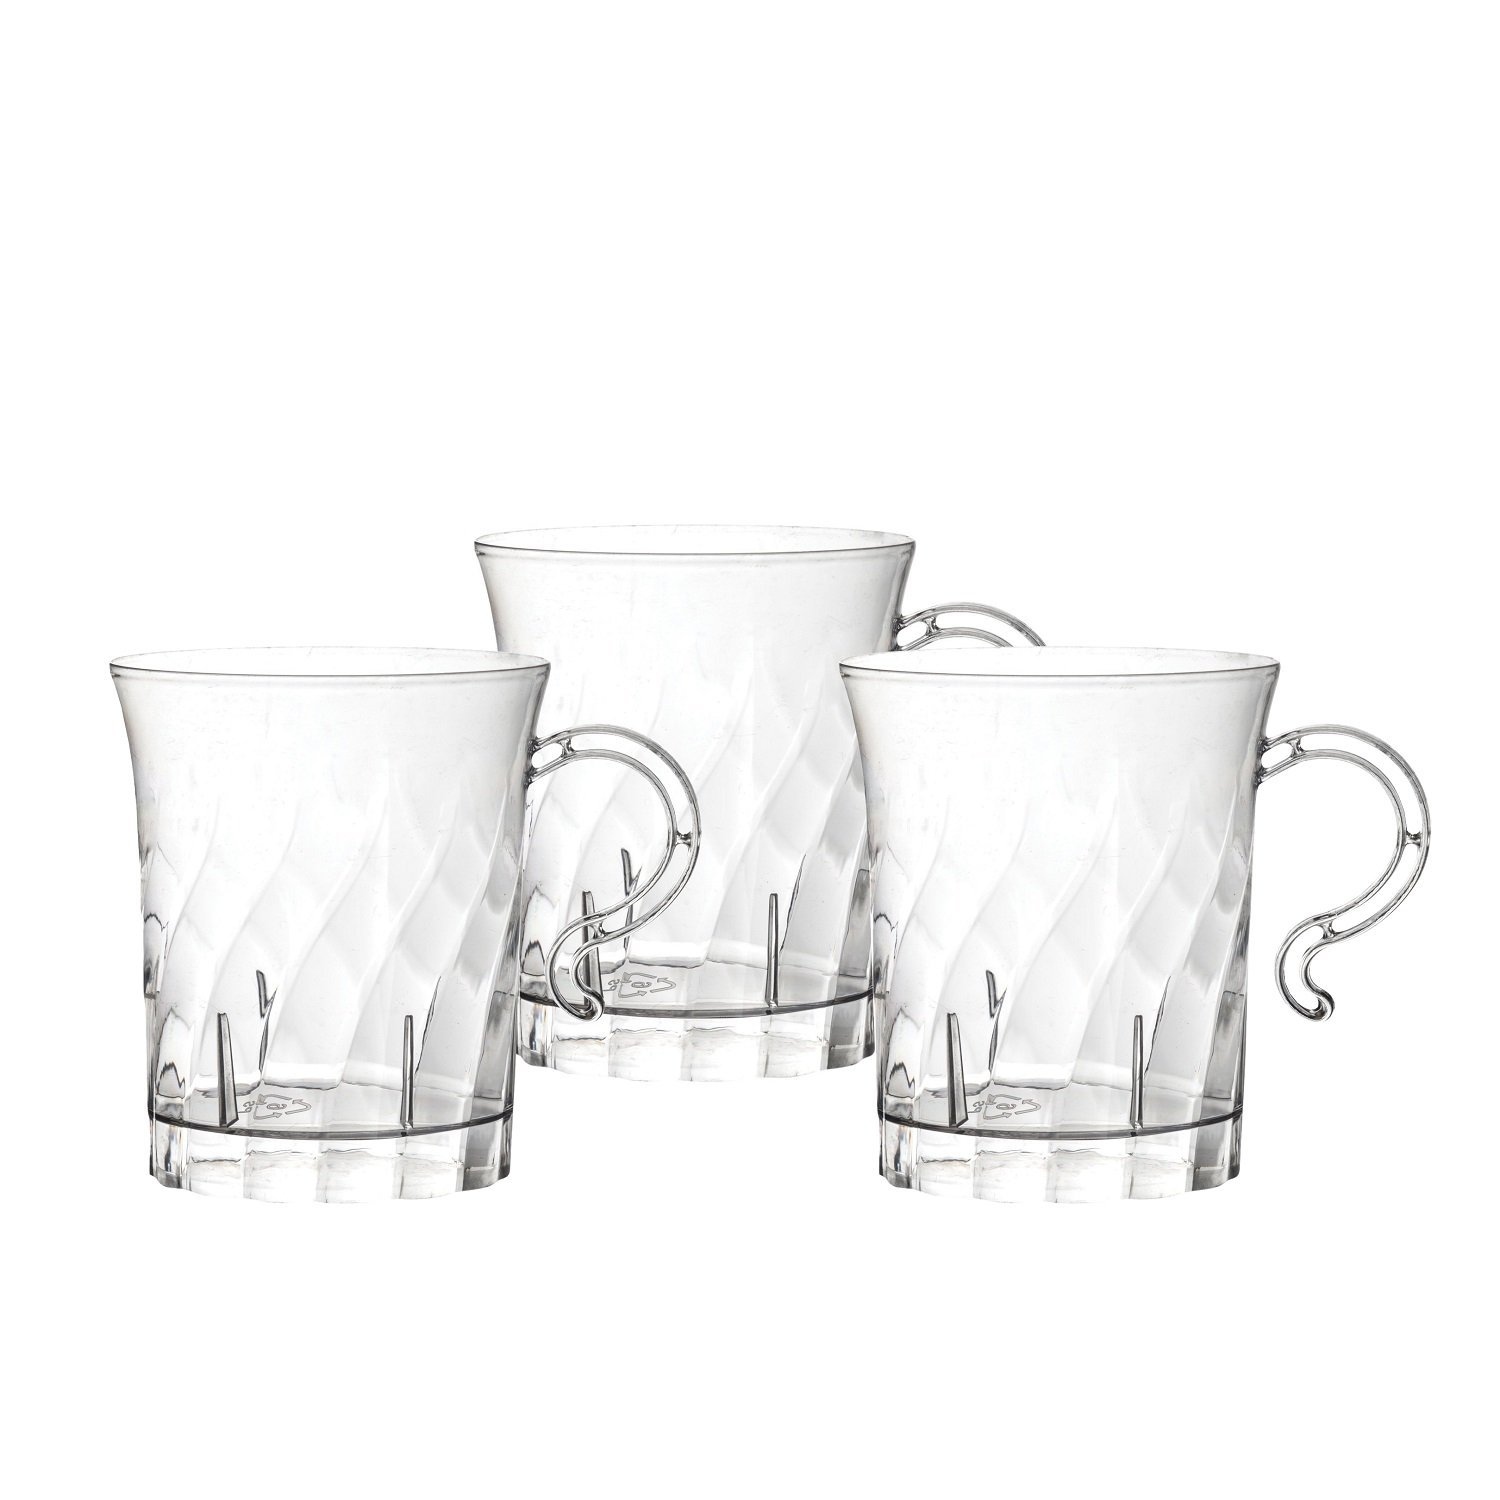 Party Essentials 10 Count Hard Plastic Swirled Coffee Cups 8 Oz Clear 4